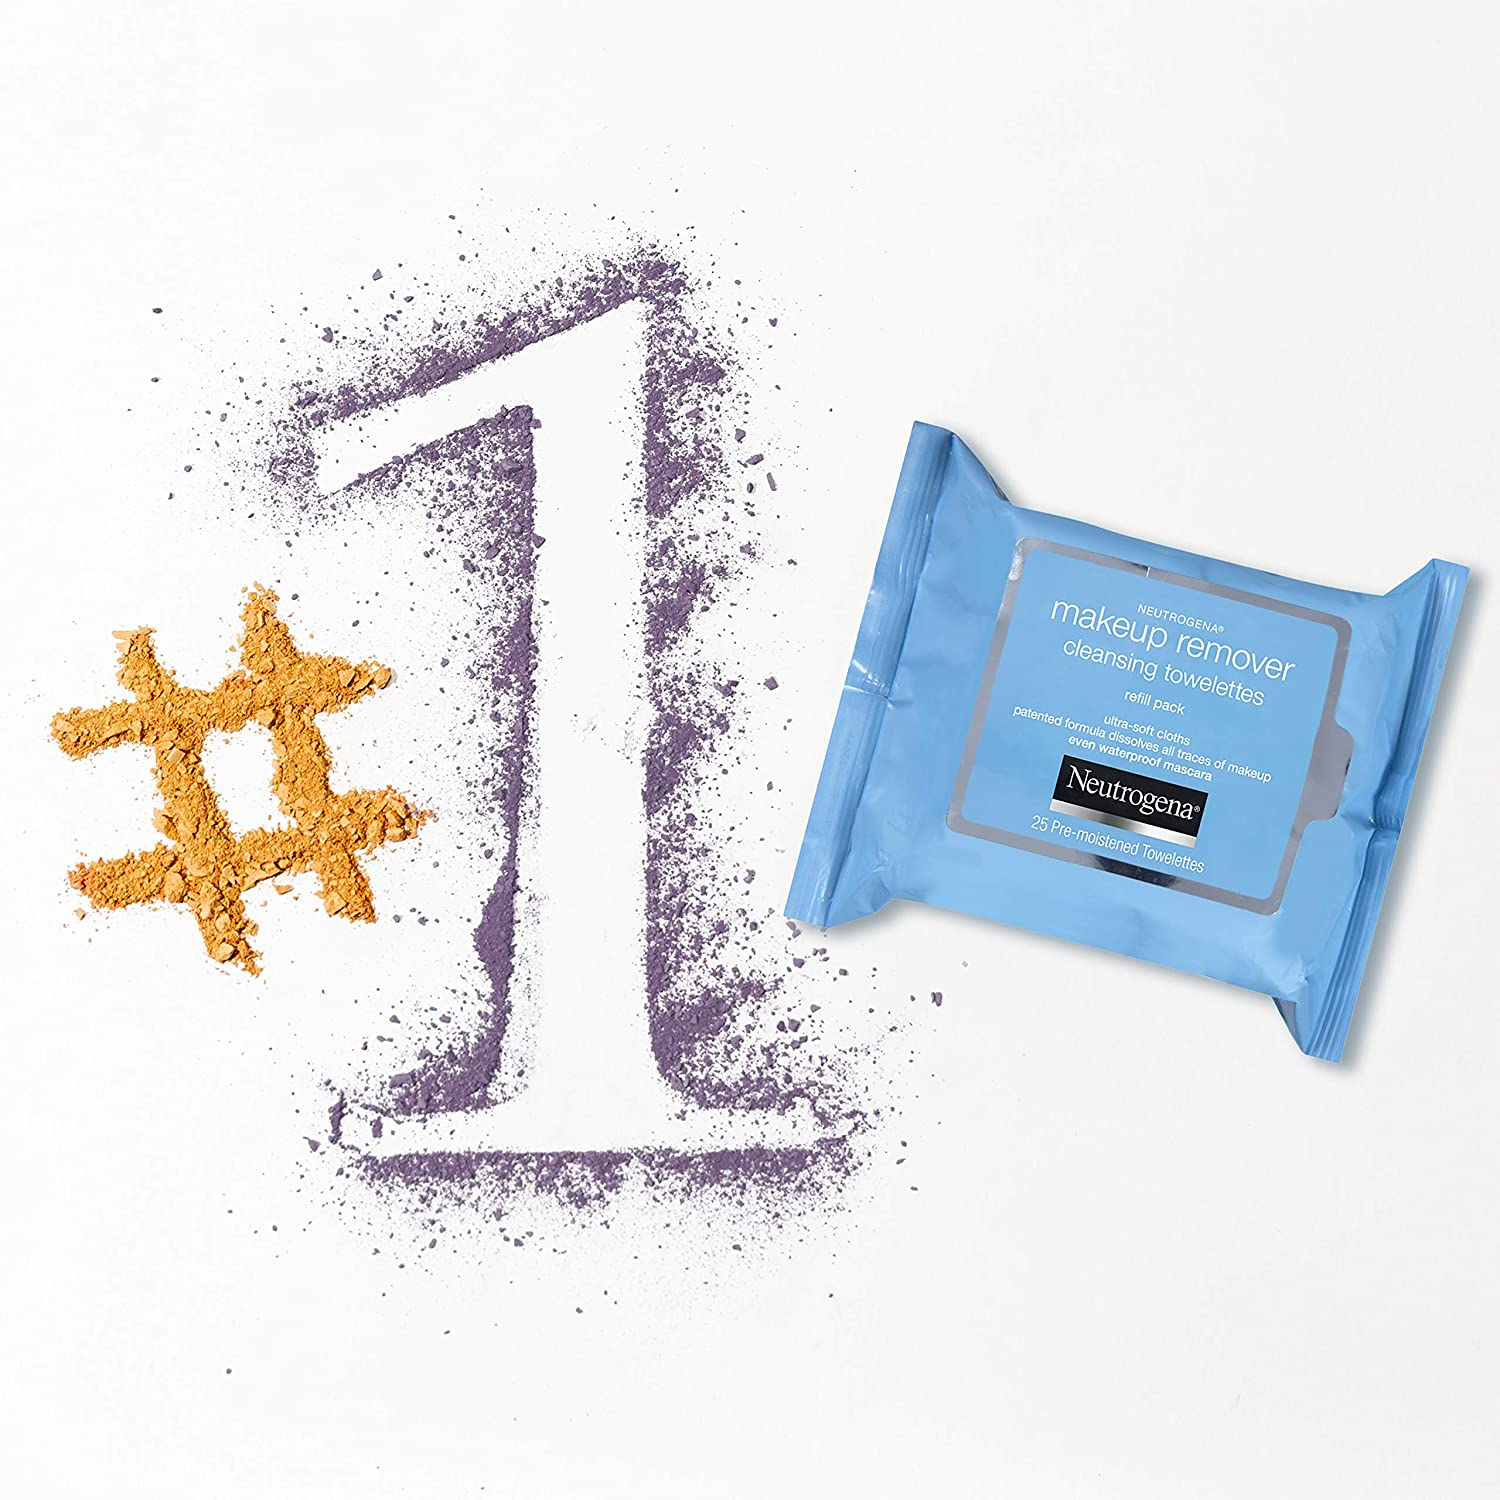 Neutrogena Day Night Wipes with Makeup Remover Face Cleansing Towelettes